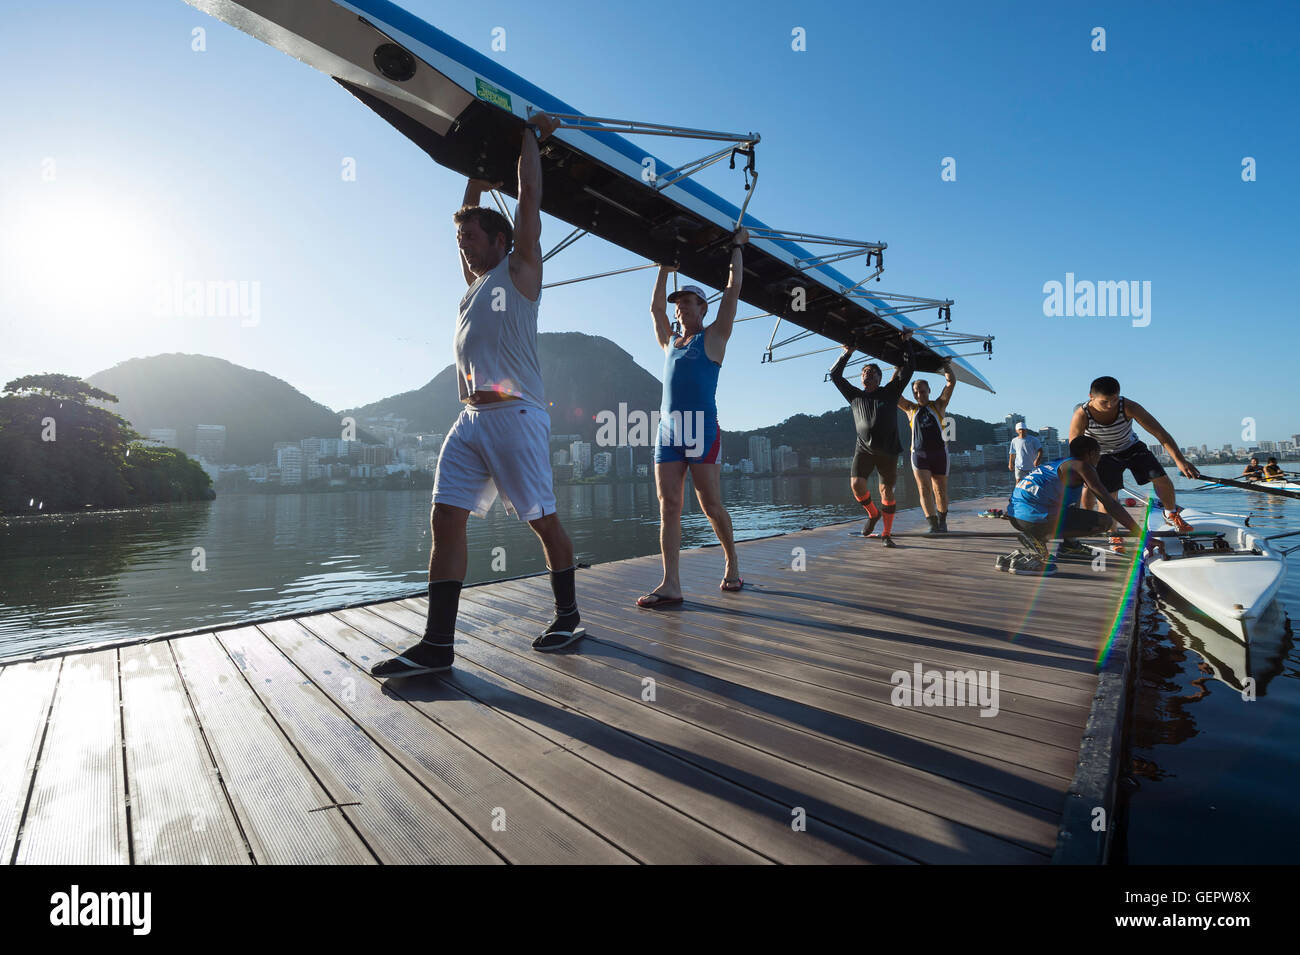 RIO DE JANEIRO - MARCH 22, 2016: After training, Brazilian rowers carry their boat back to the clubhouse at Lagoa. - Stock Image